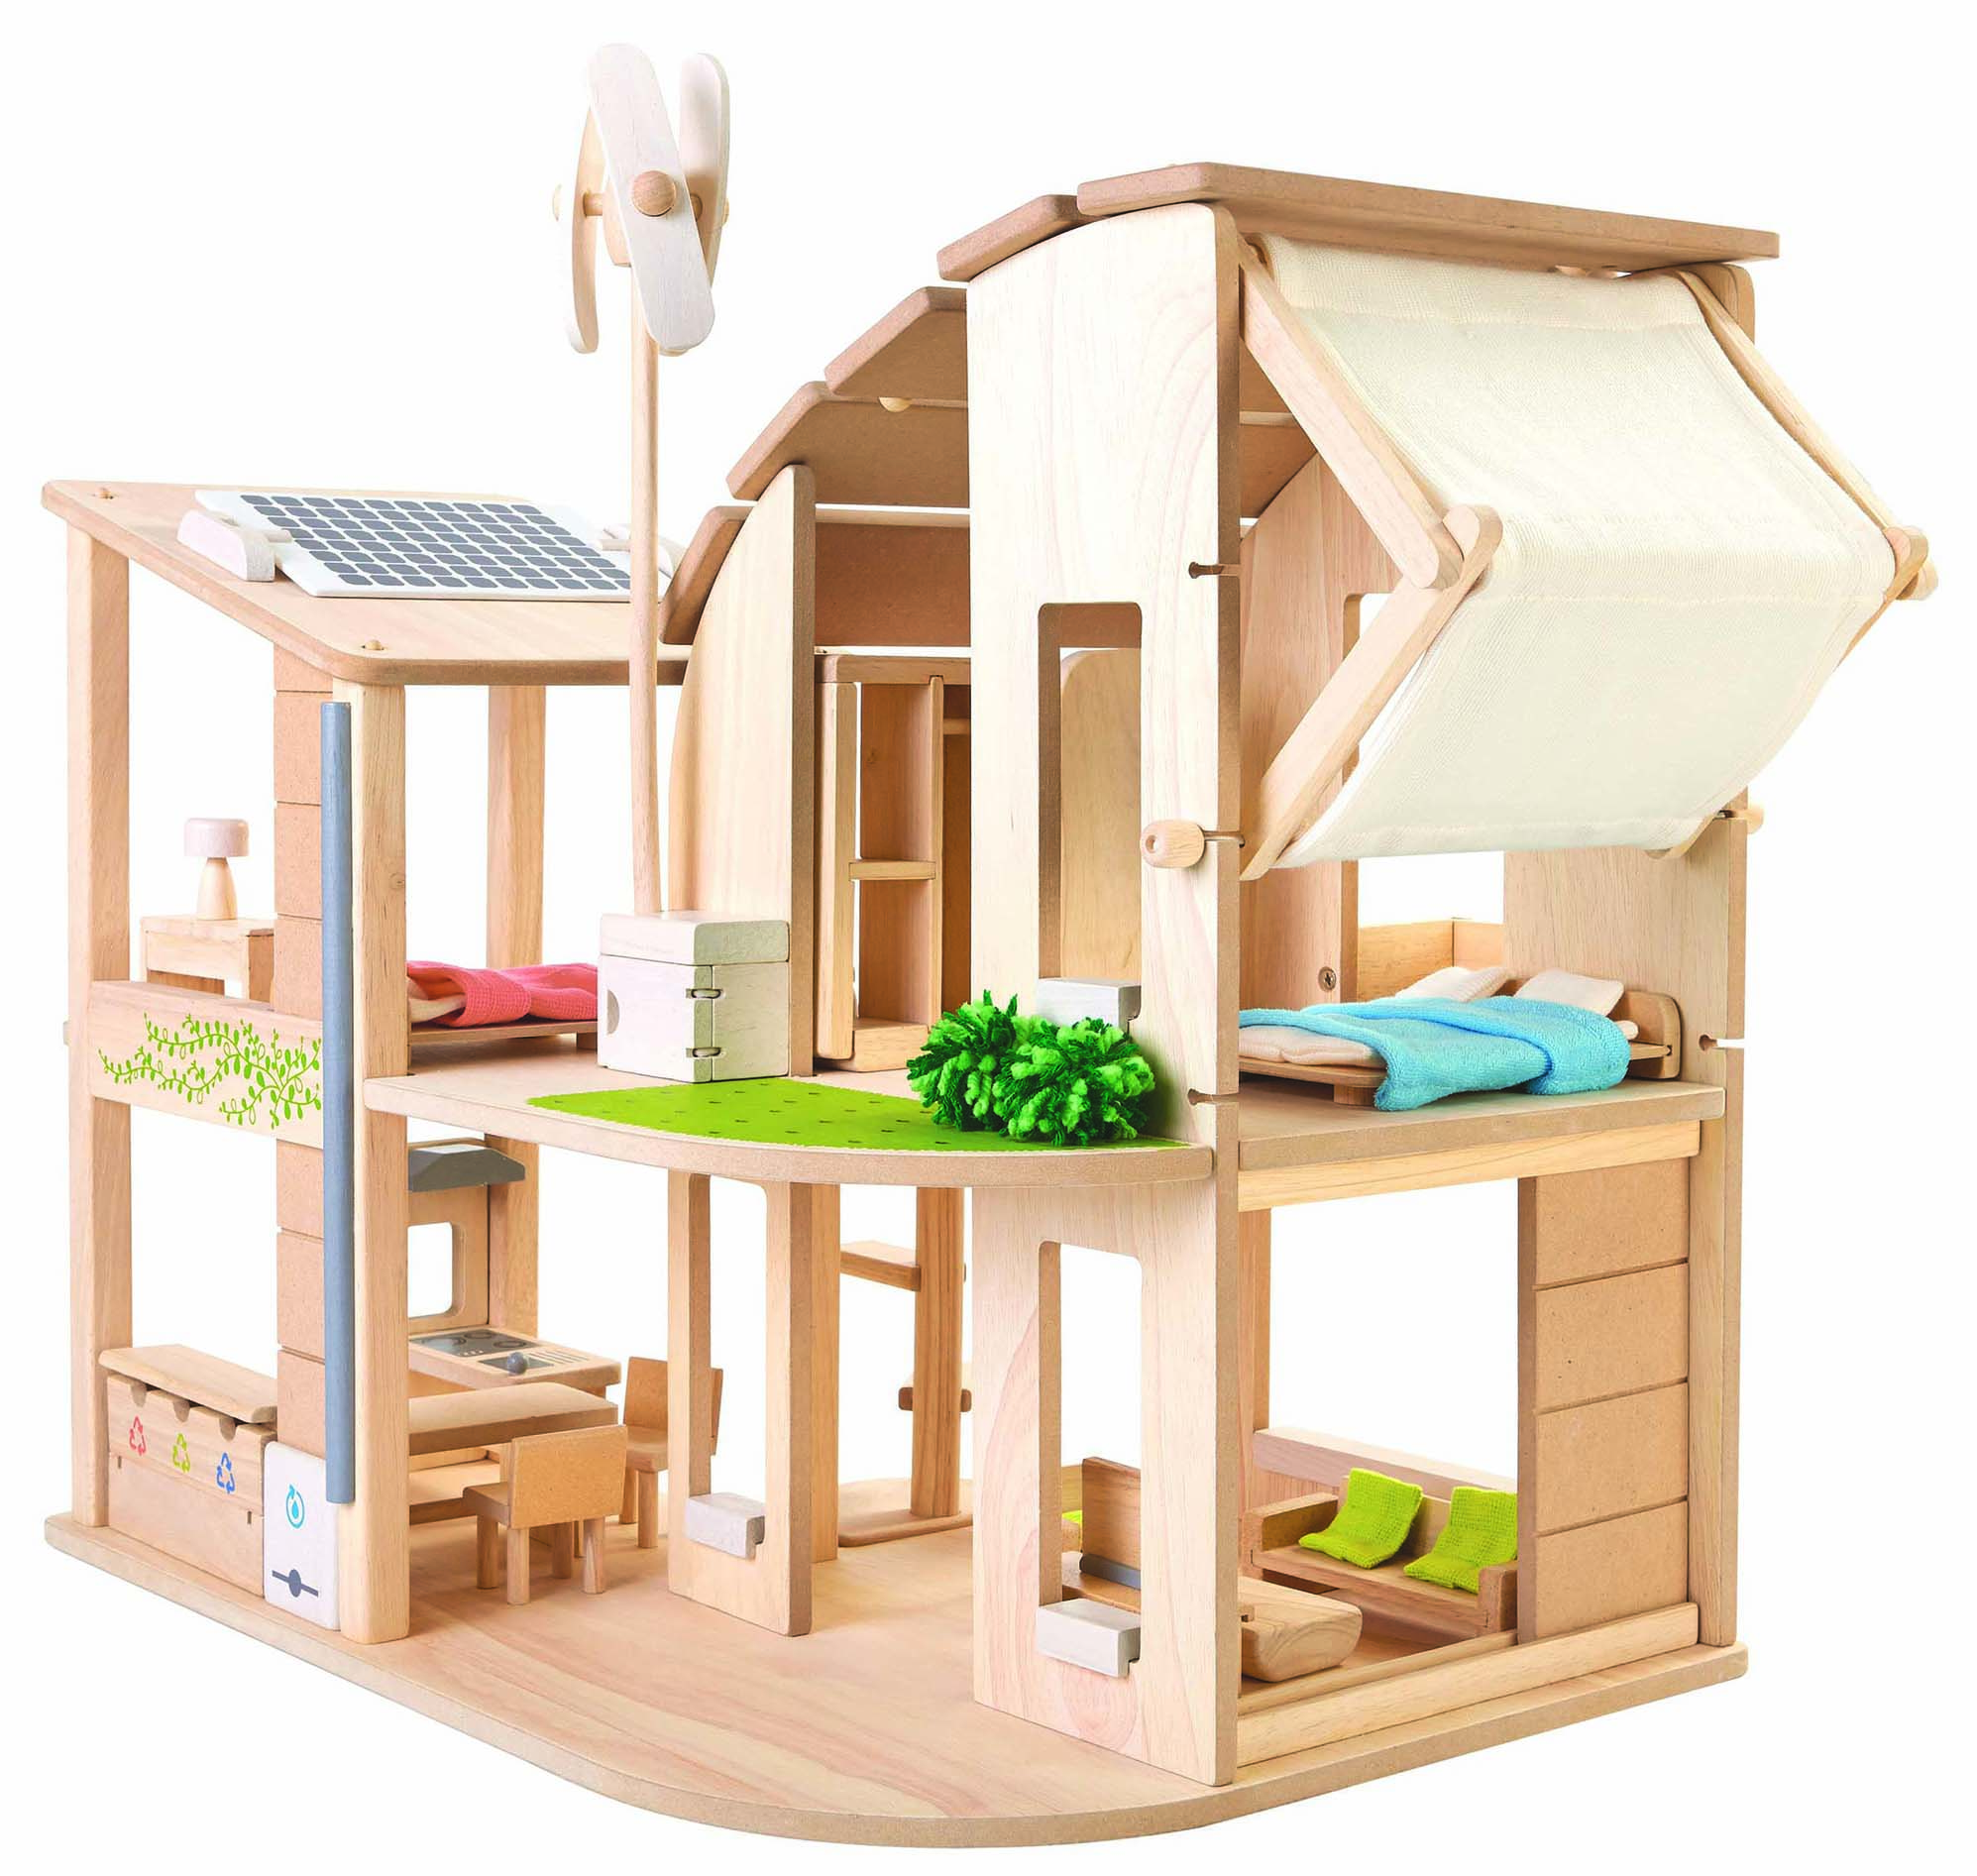 7156-green-dolls-house-furniture